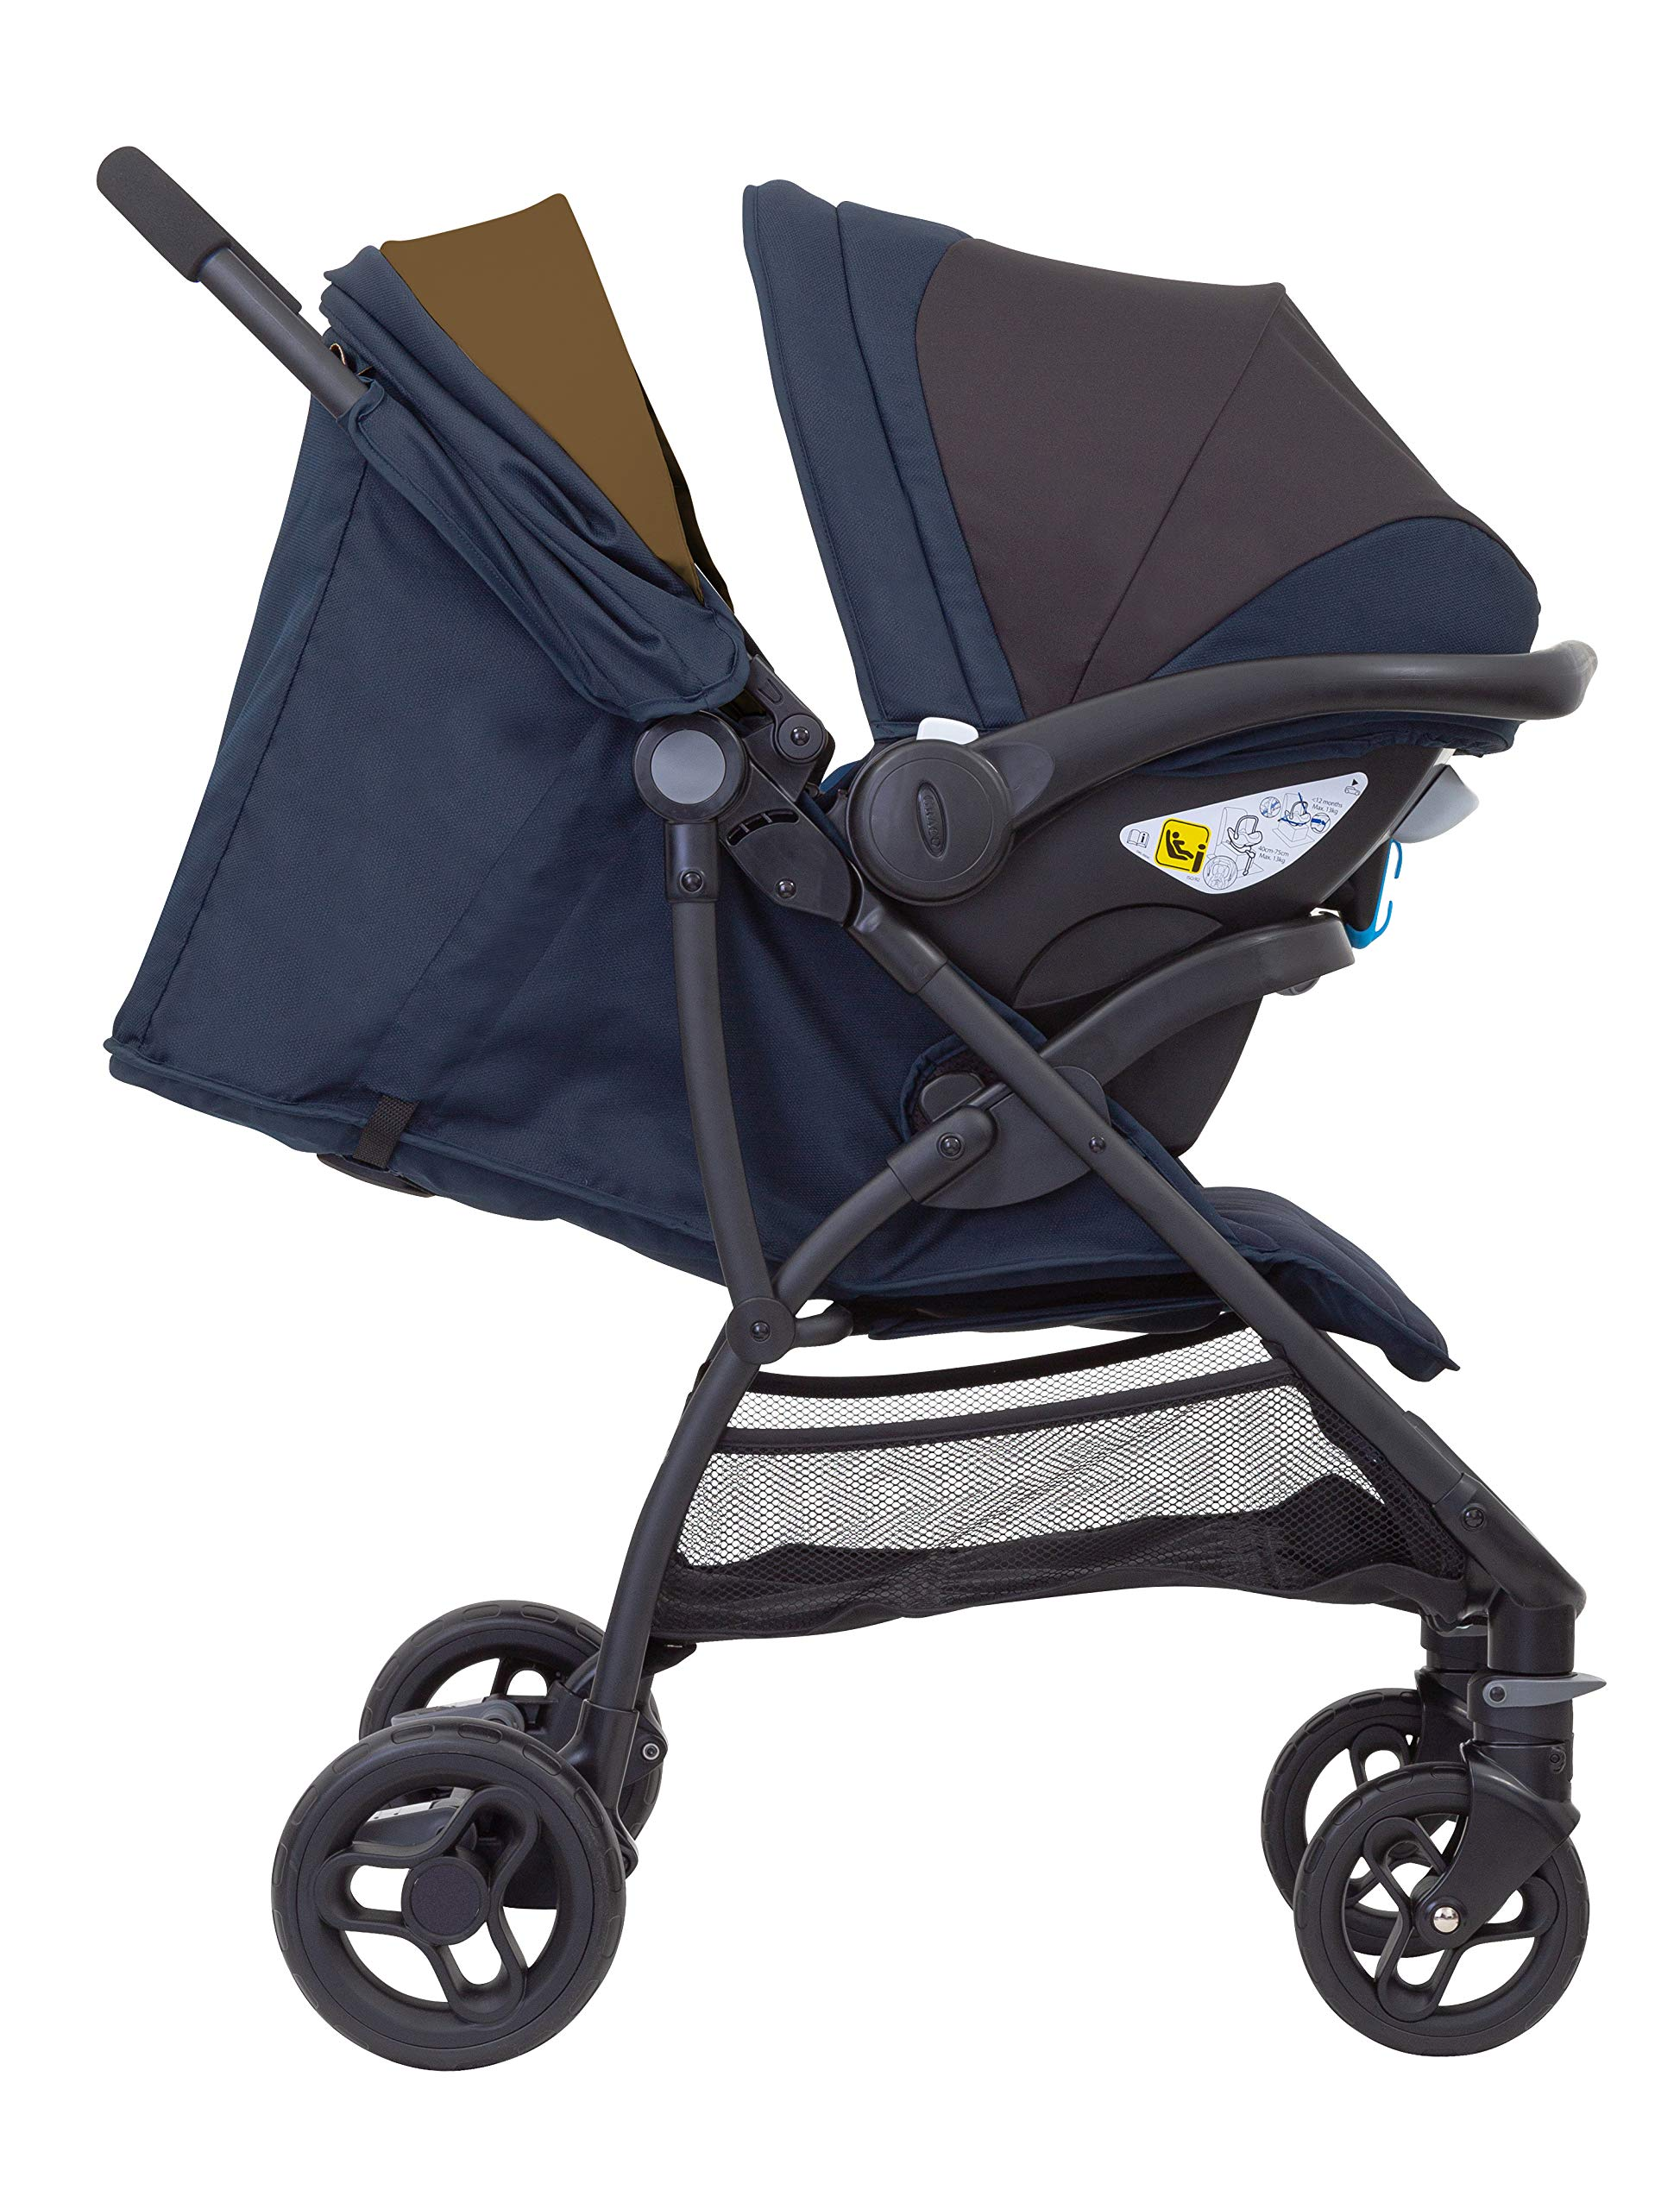 Graco Breaze Lite i-Size Travel System, Eclipse Graco From birth to 3 years approx. (0-15kg) Travel system package with snug essentials isize infant car seat included Lightweight stroller at only 6.5kg 4